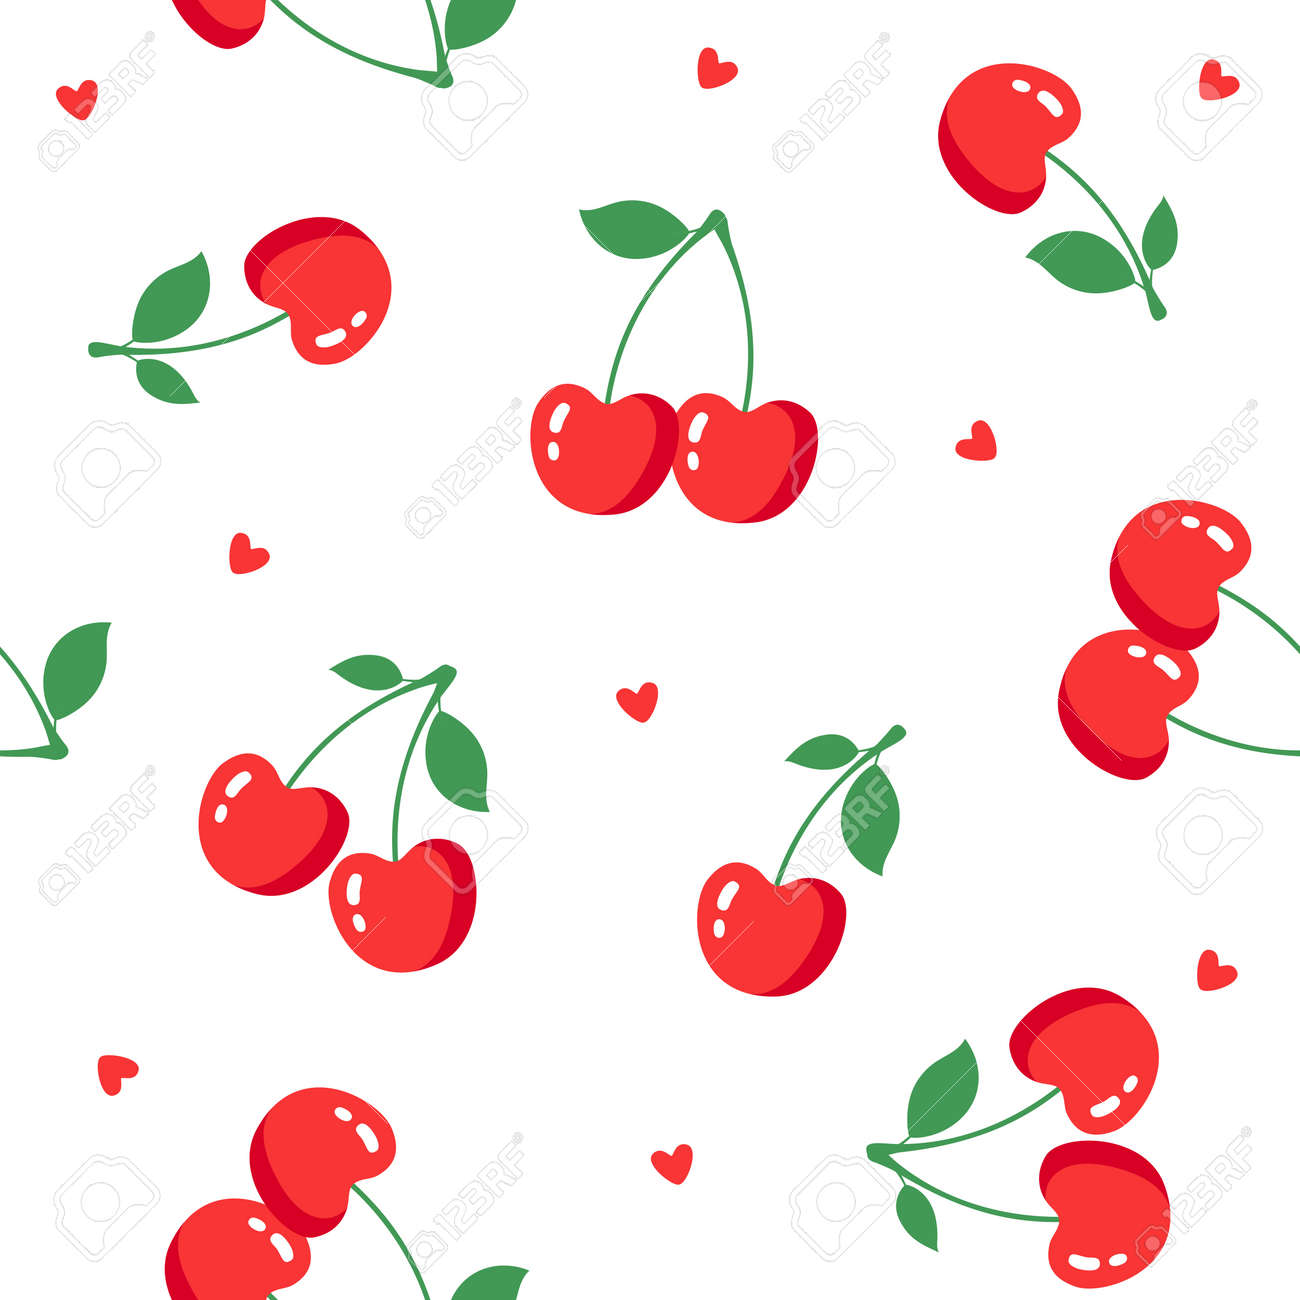 Seamless pattern with cherries on white background. Vector illustration - 115034066